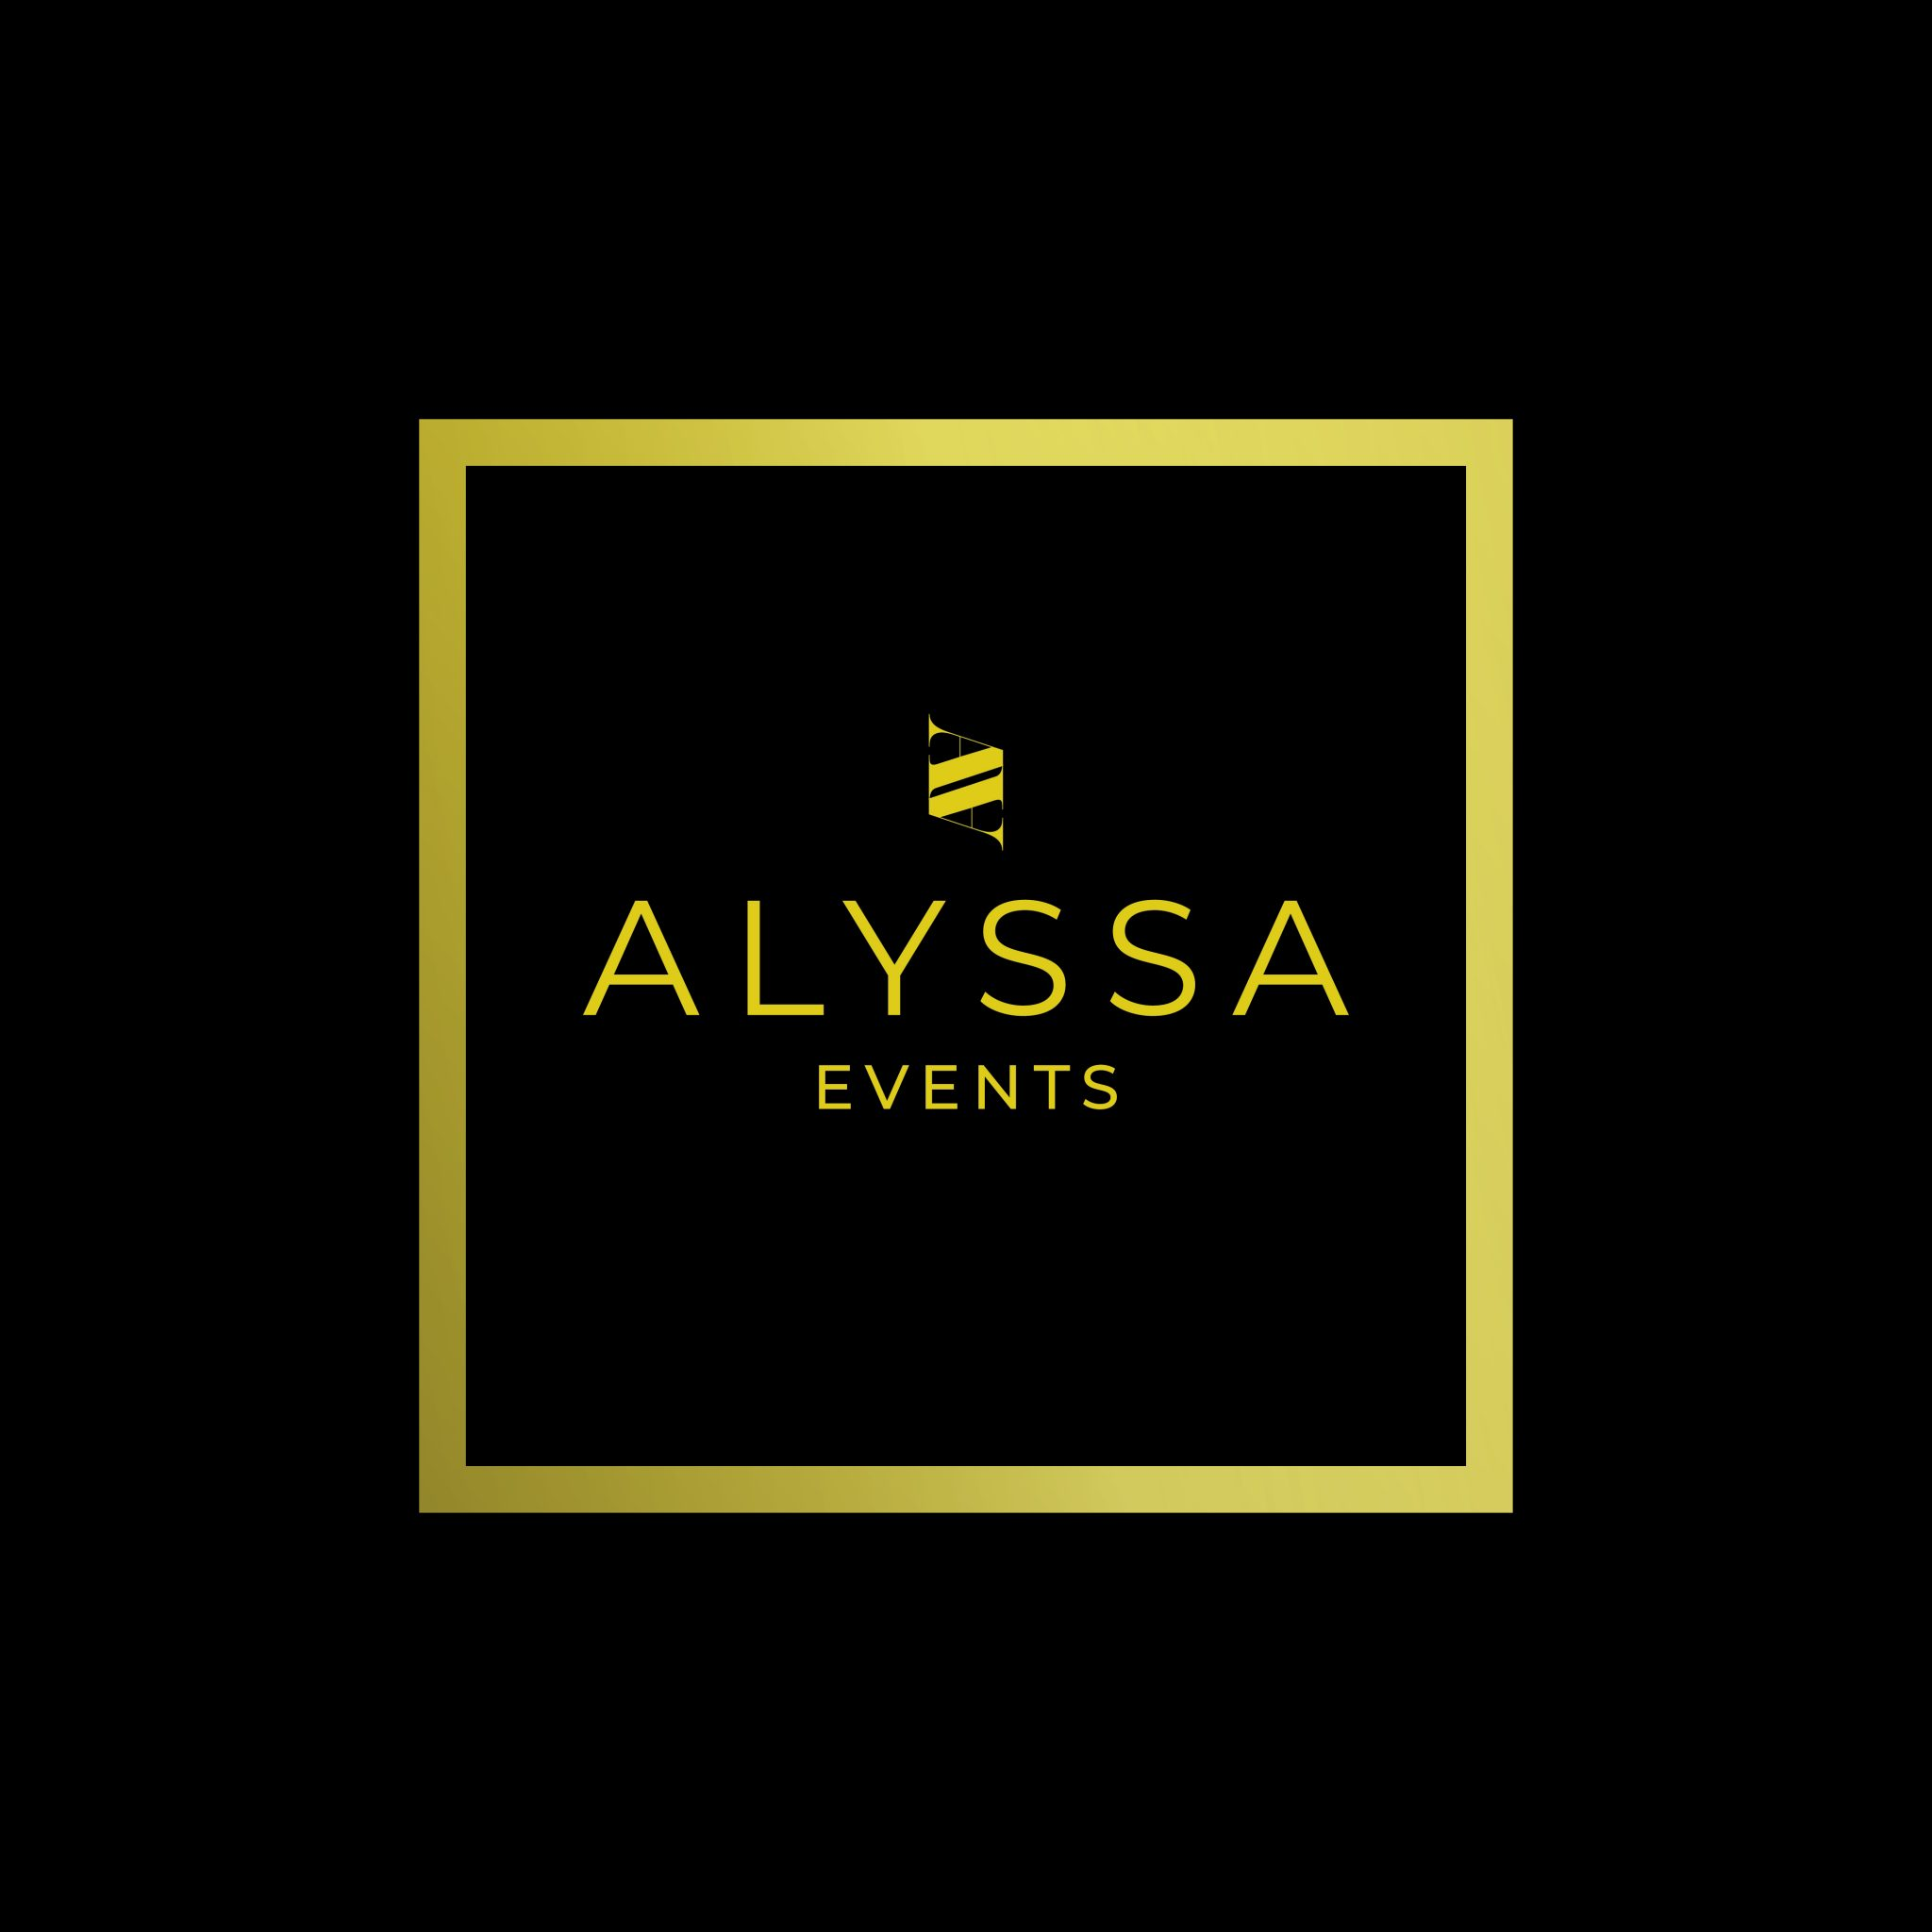 Alyssa events logo v4-01